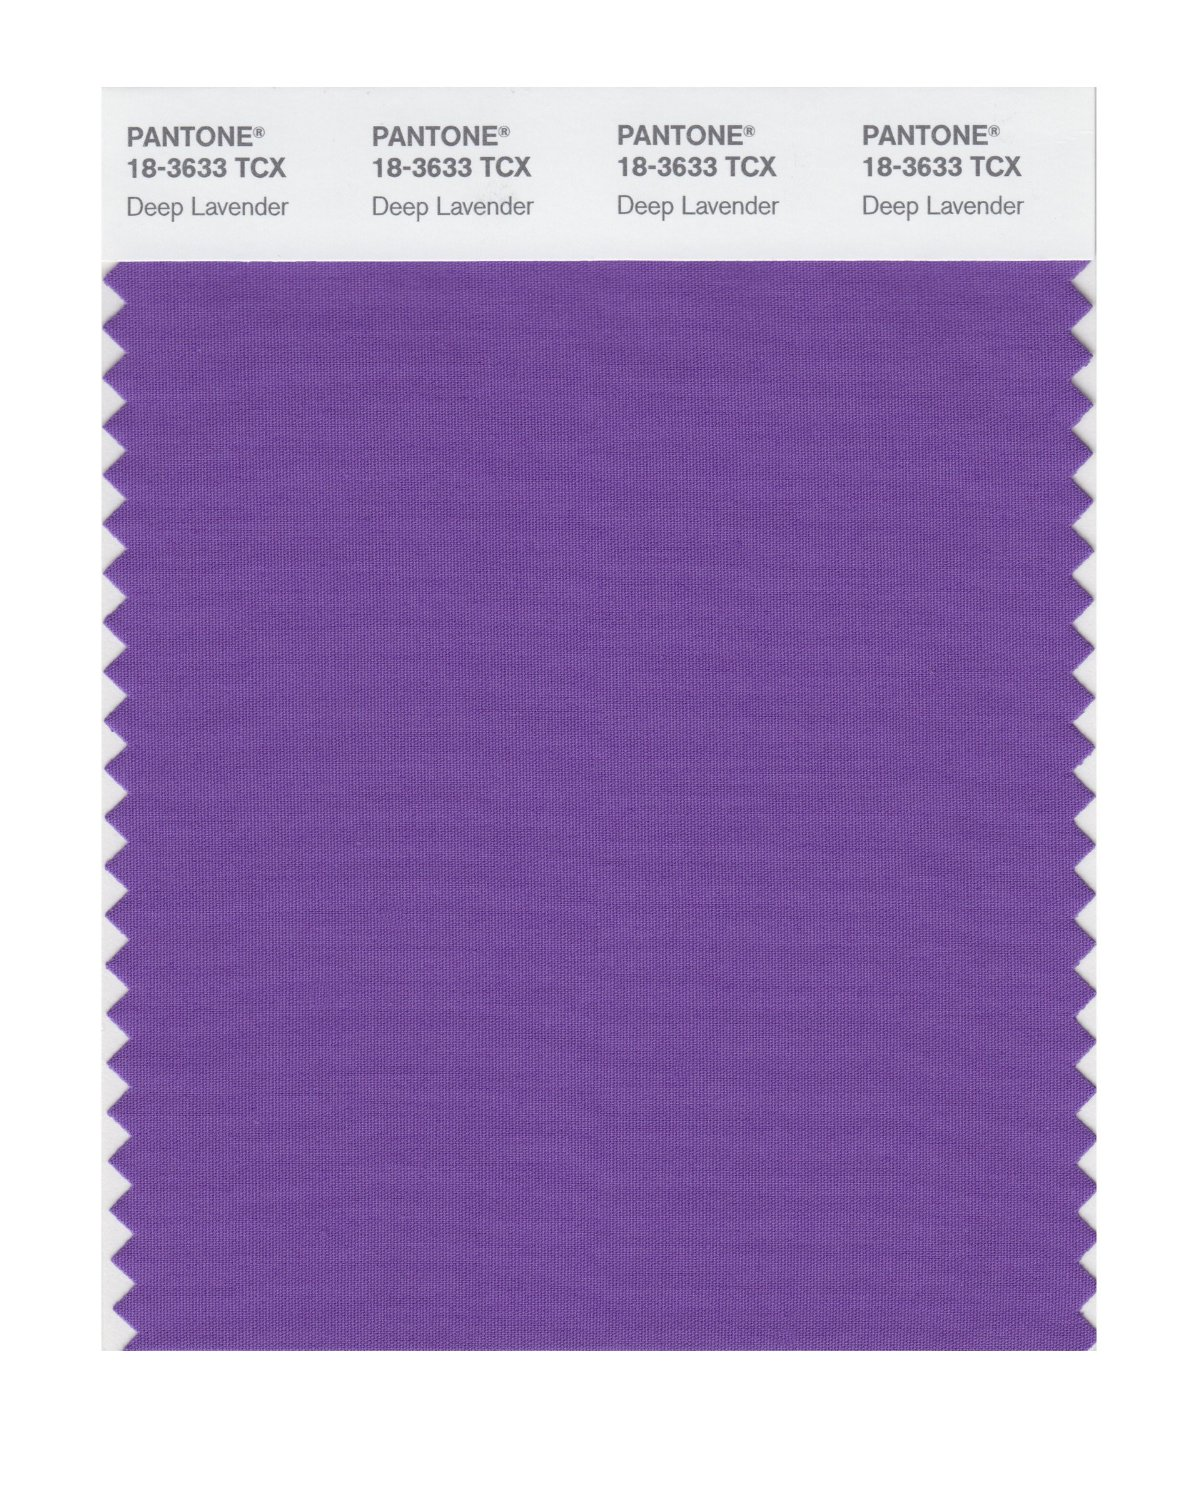 Pantone Smart Swatch 18-3633 Deep Lavender